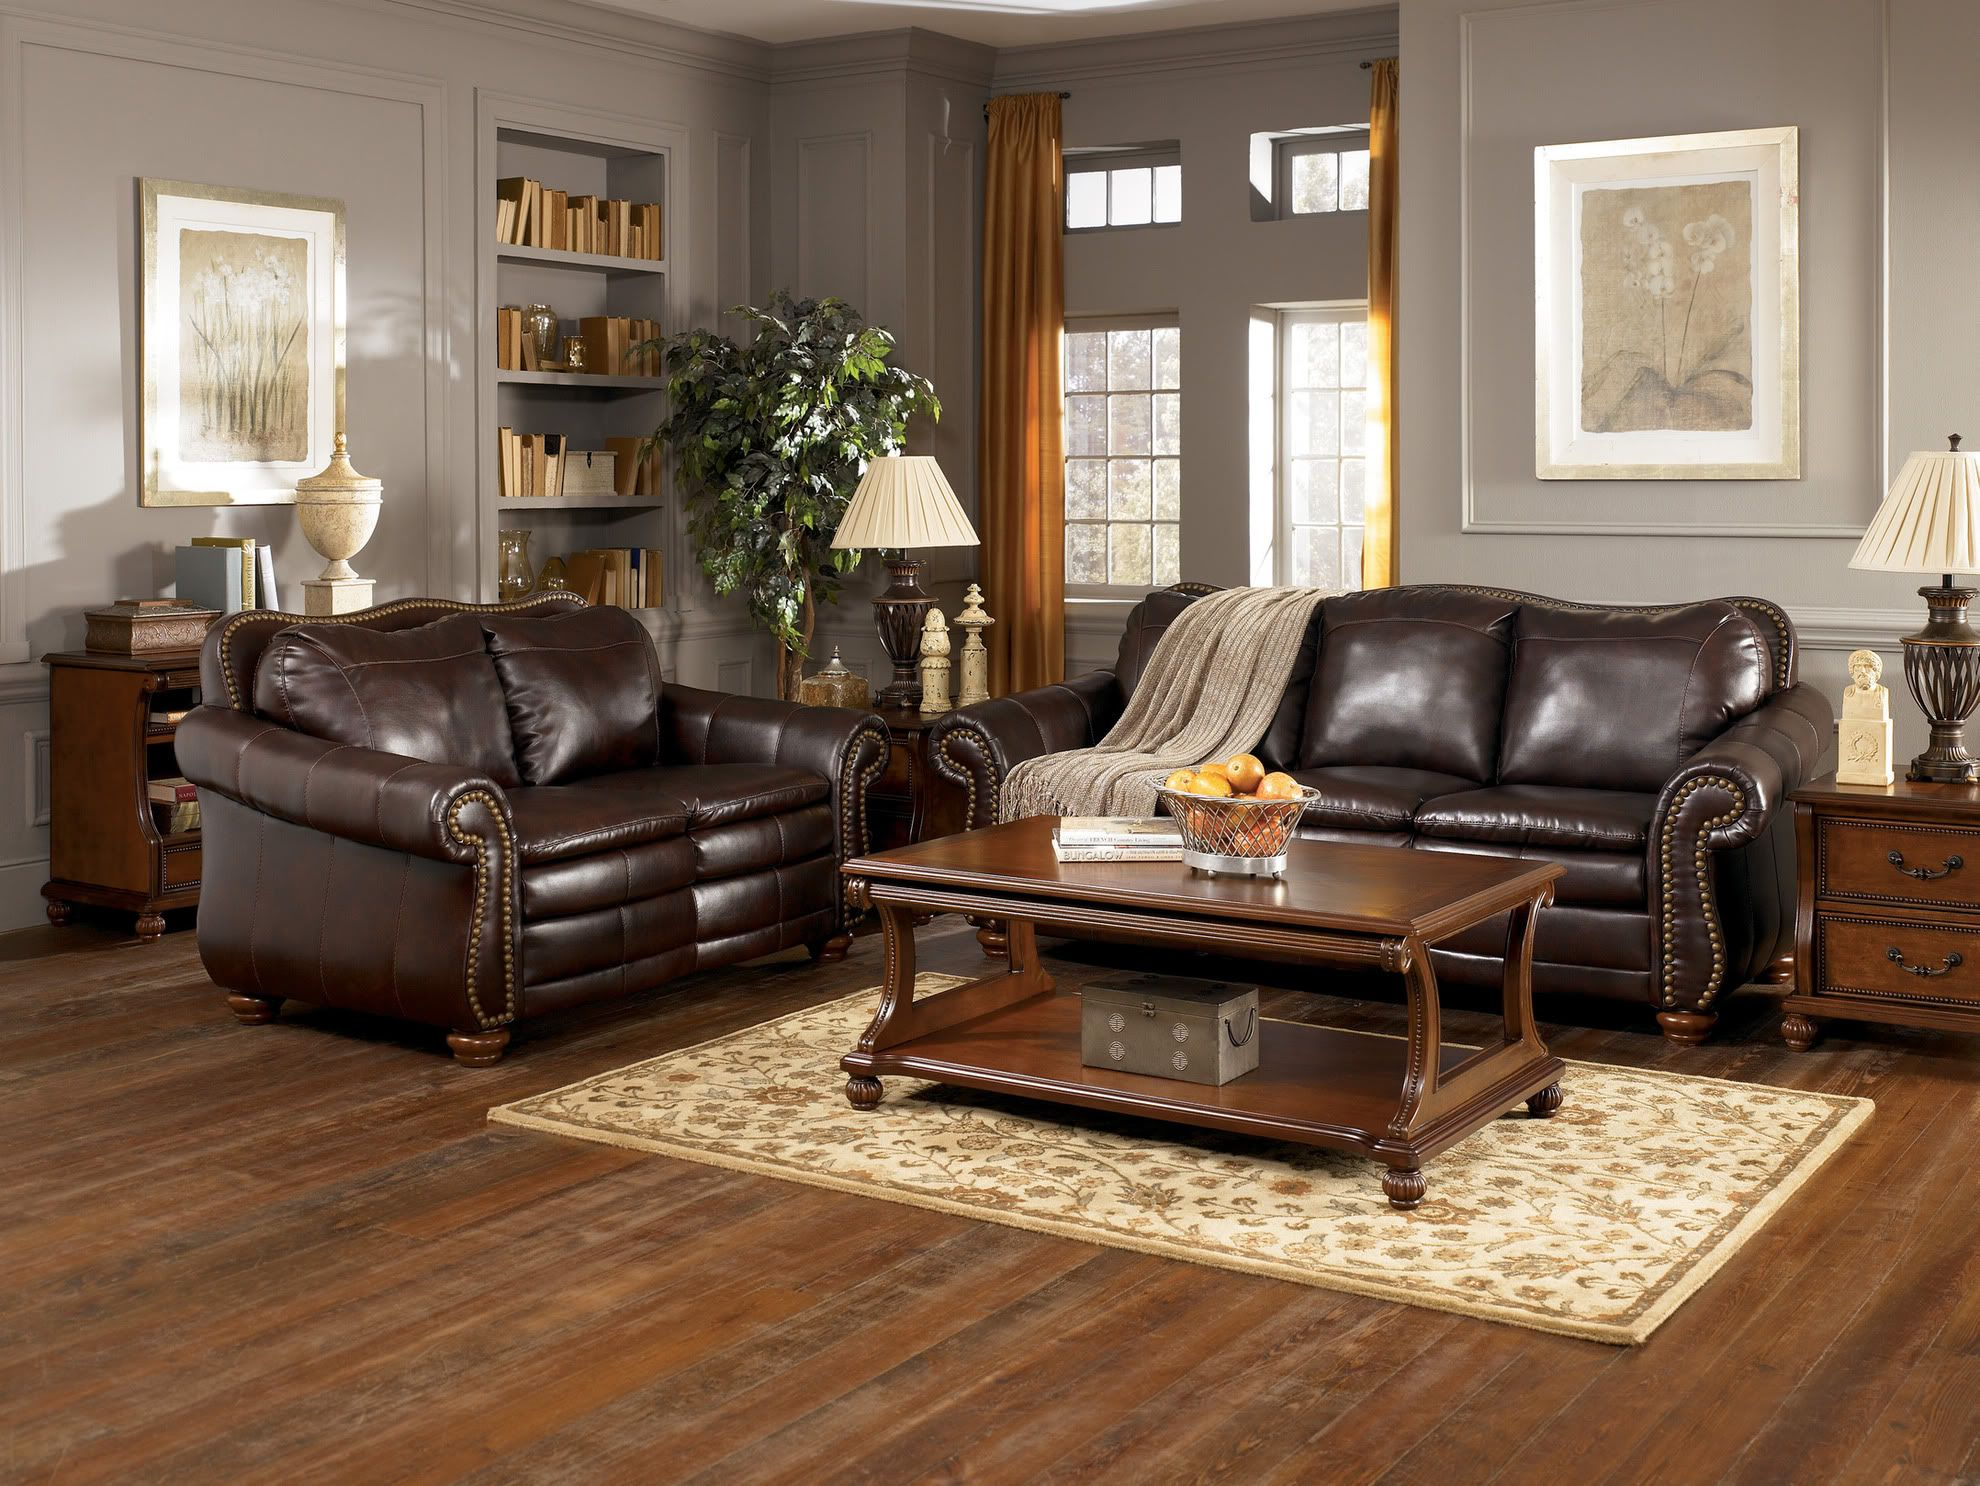 Fetching grey living room with brown furniture design for Brown colors for walls